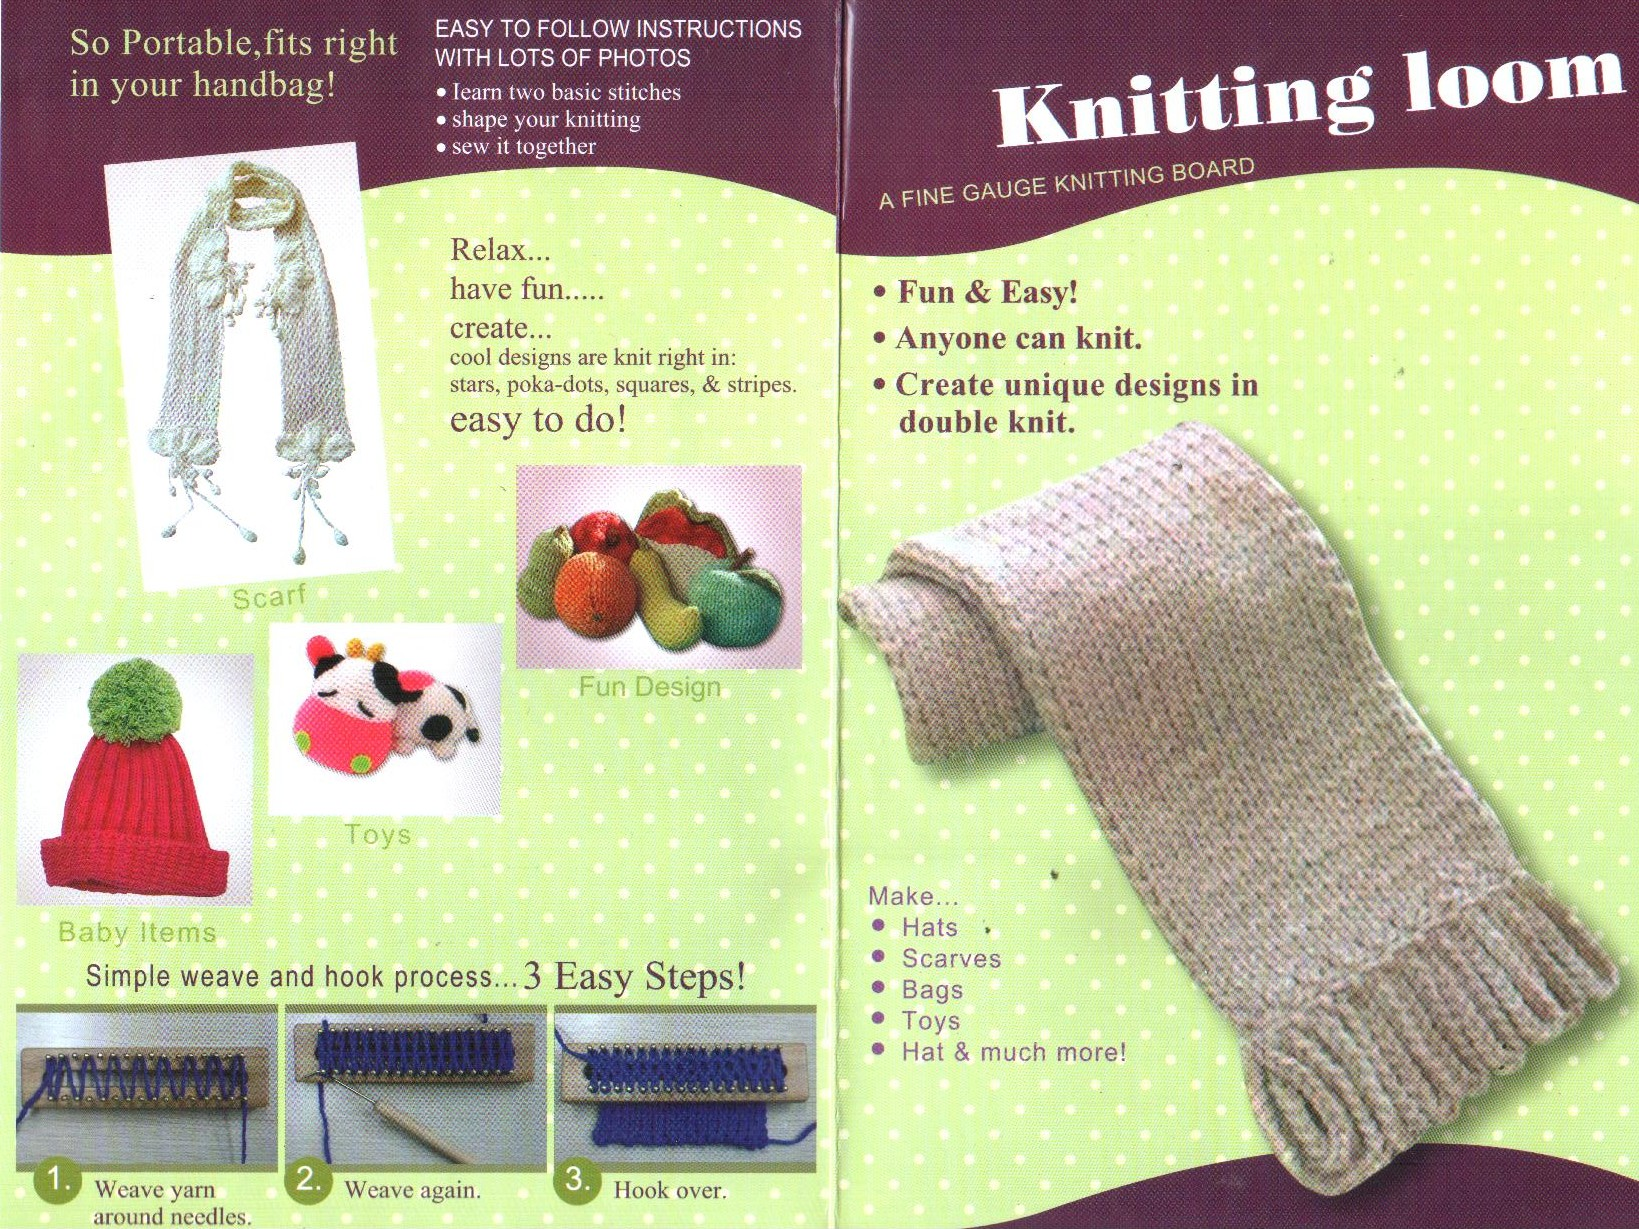 Wooden Knitting Loom at Ice Yarns Online Yarn Store